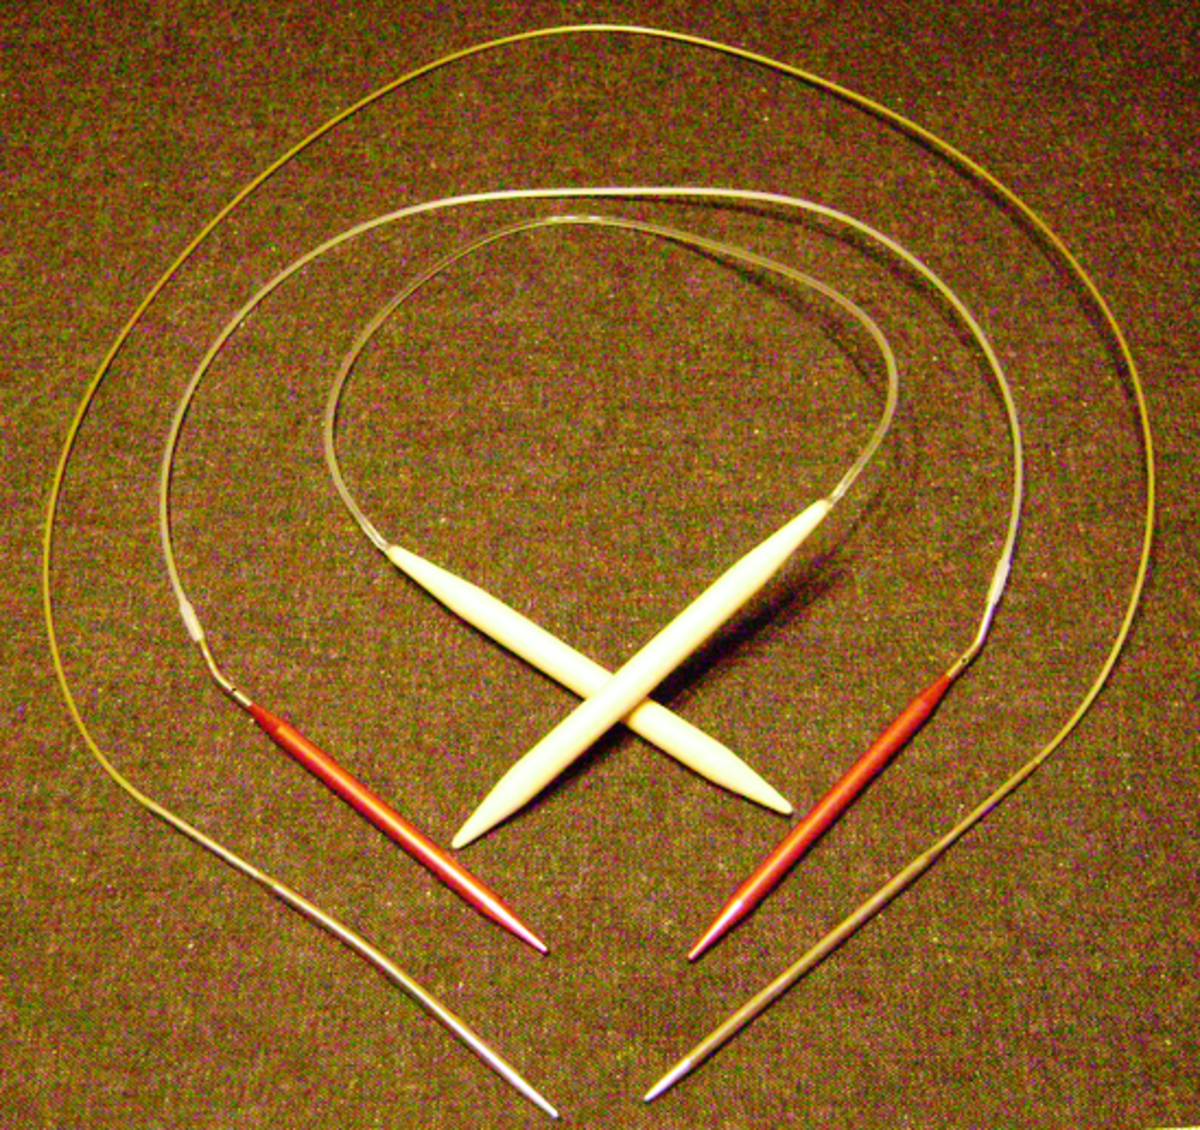 Circular needles help prevent dropped stitches and are used for working in the round and for larger knitted pieces.